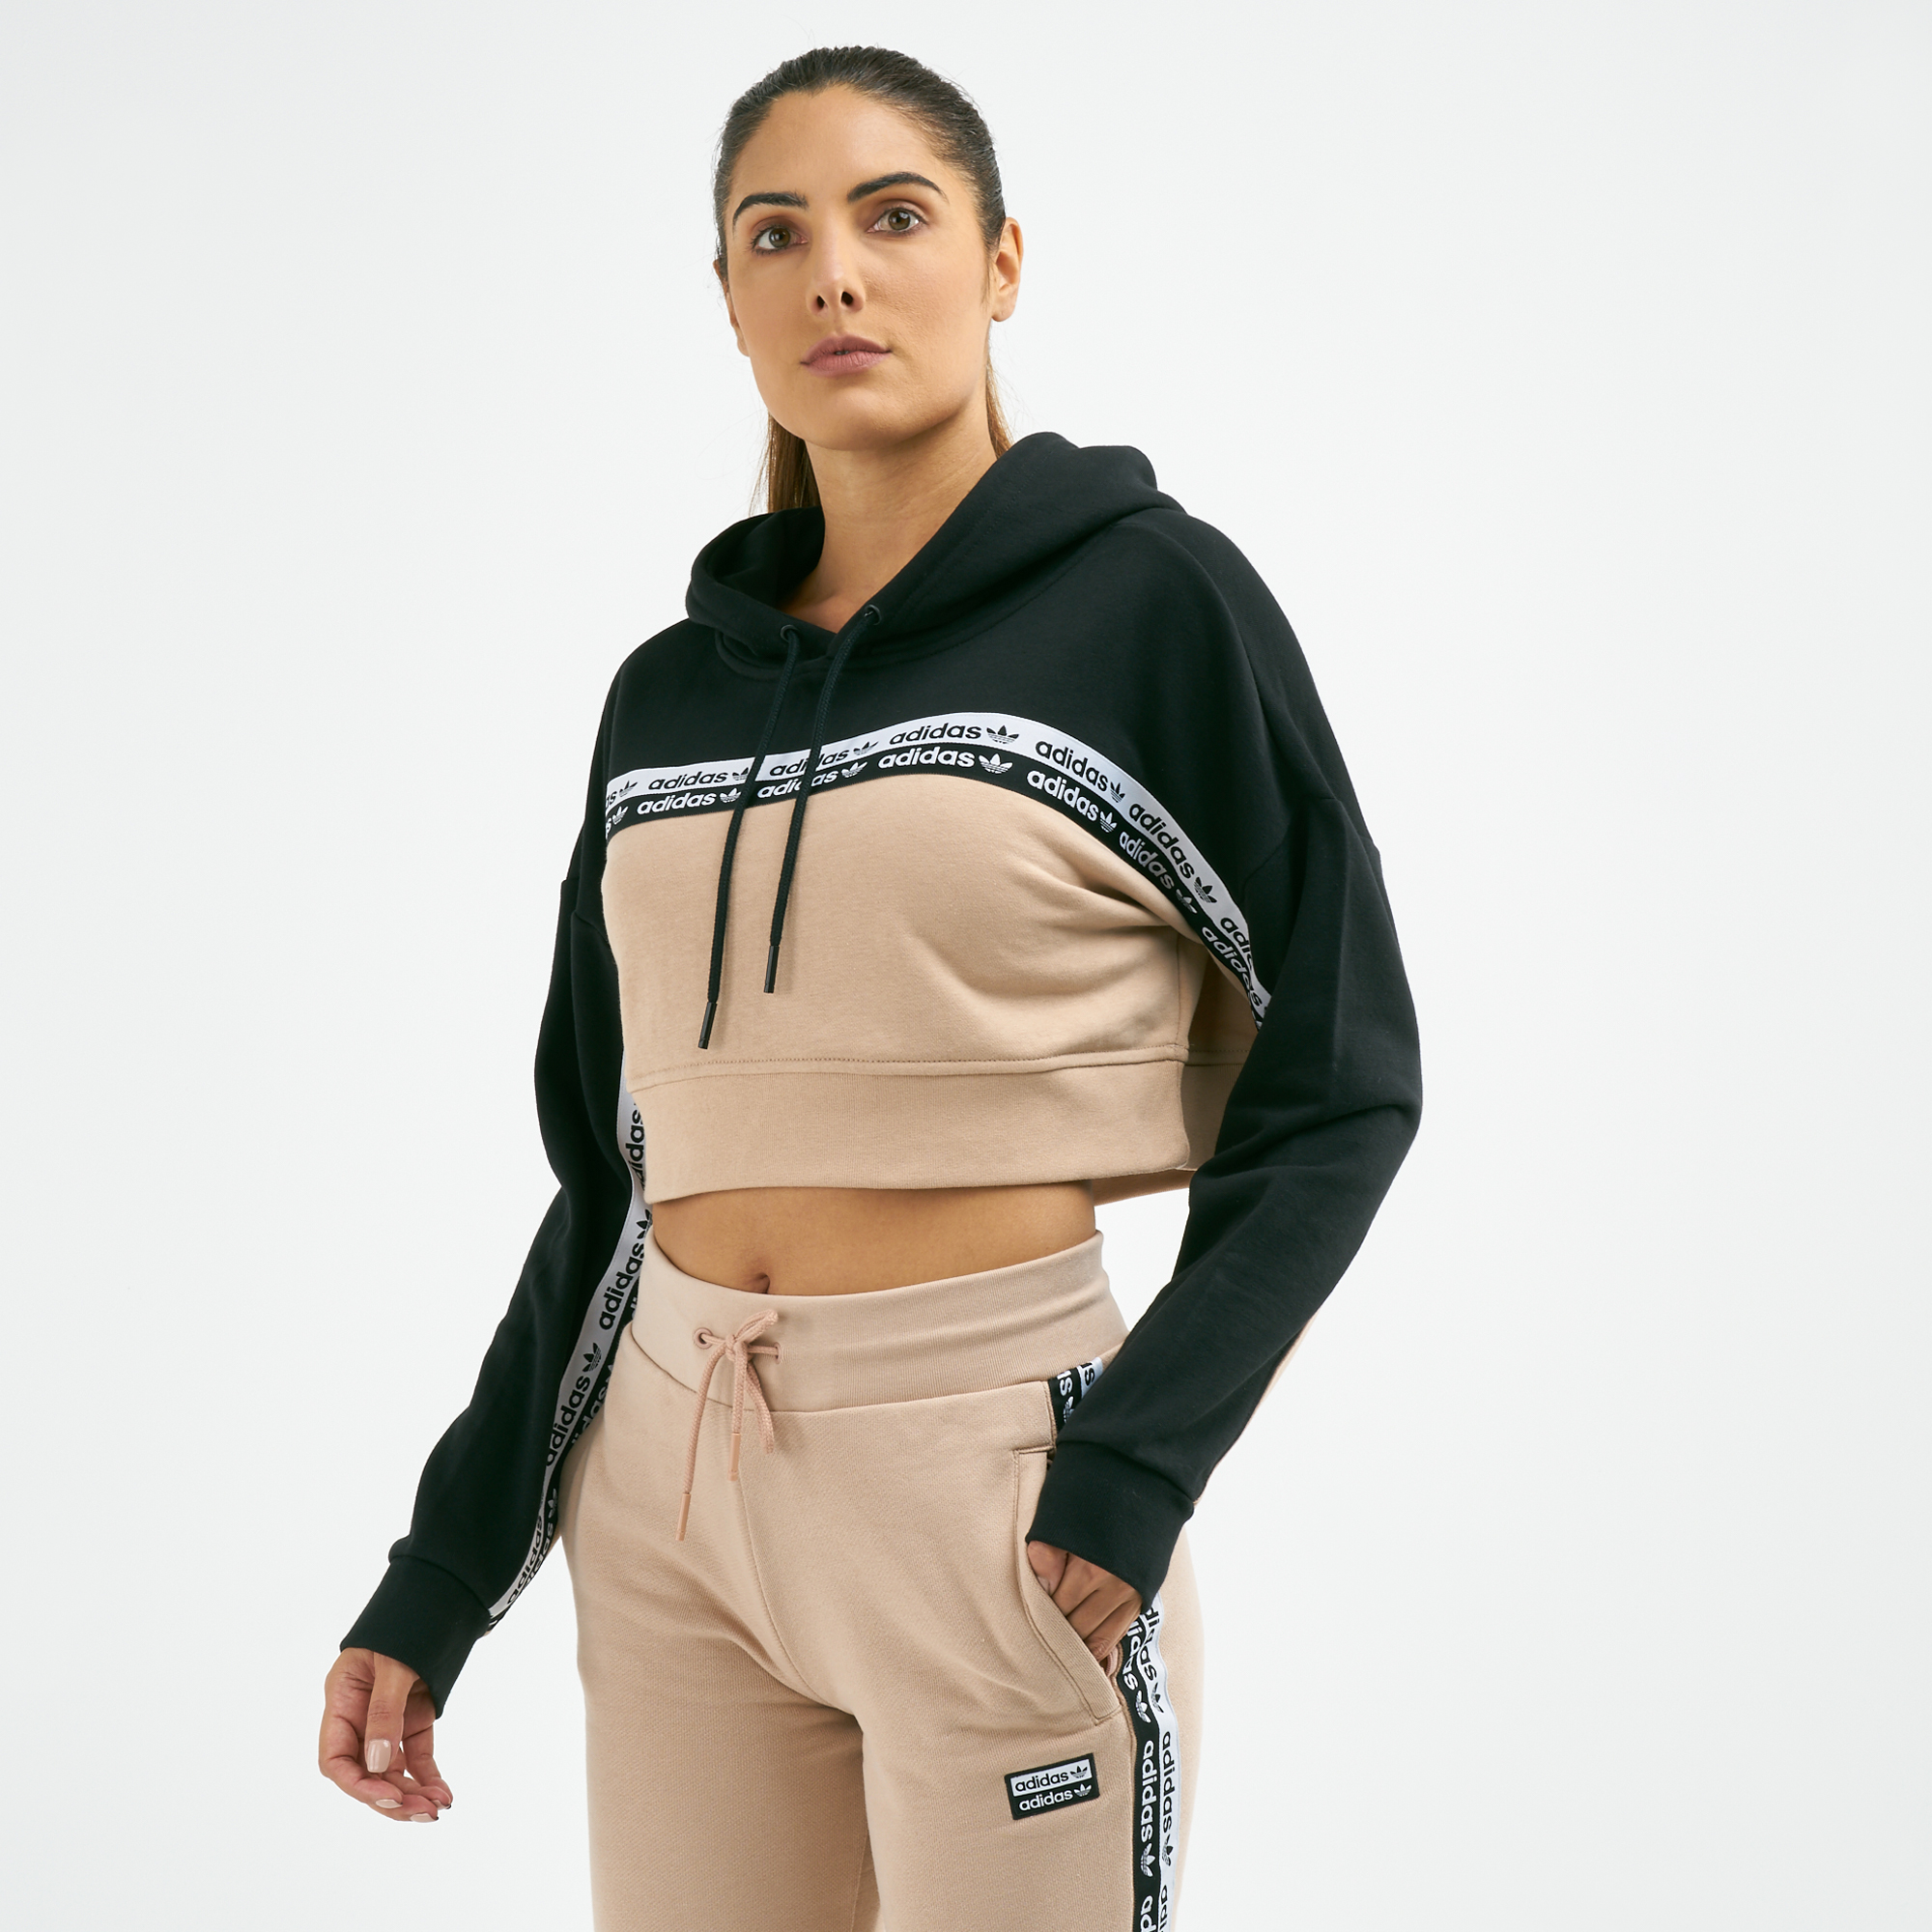 fec51357184 adidas Originals Women's Cropped Hoodie | Hoodies | Hoodies and ...